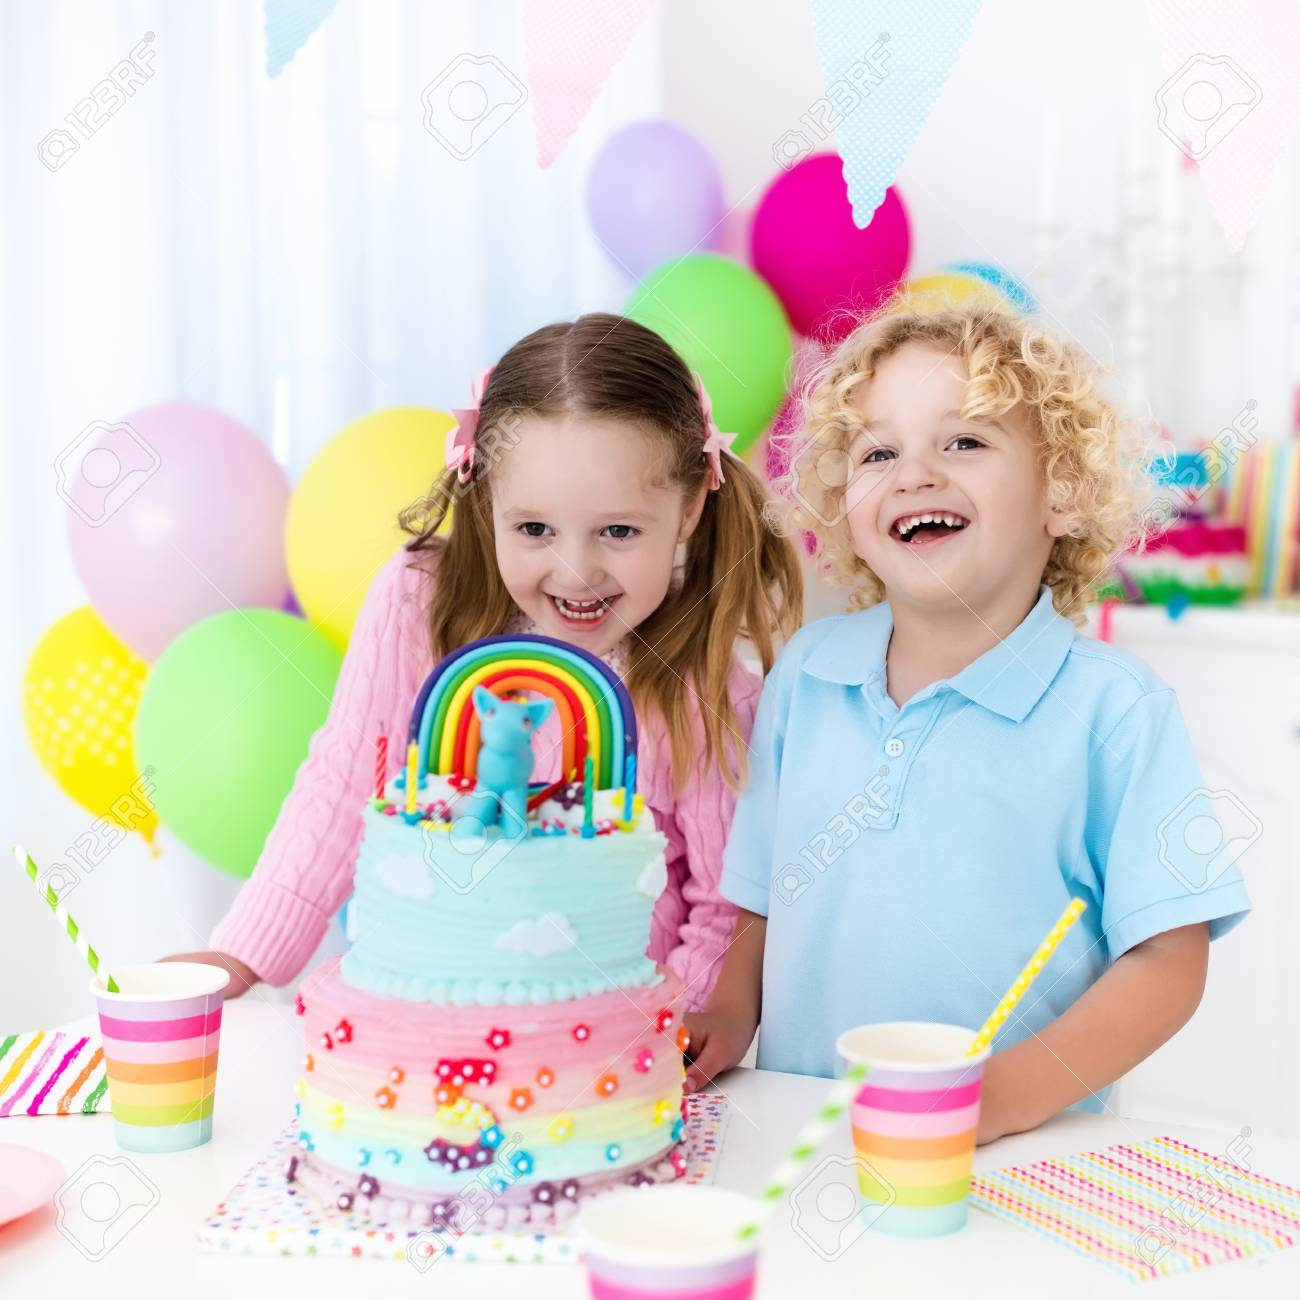 Kids Birthday Party With Colorful Pastel Decoration And Rainbow